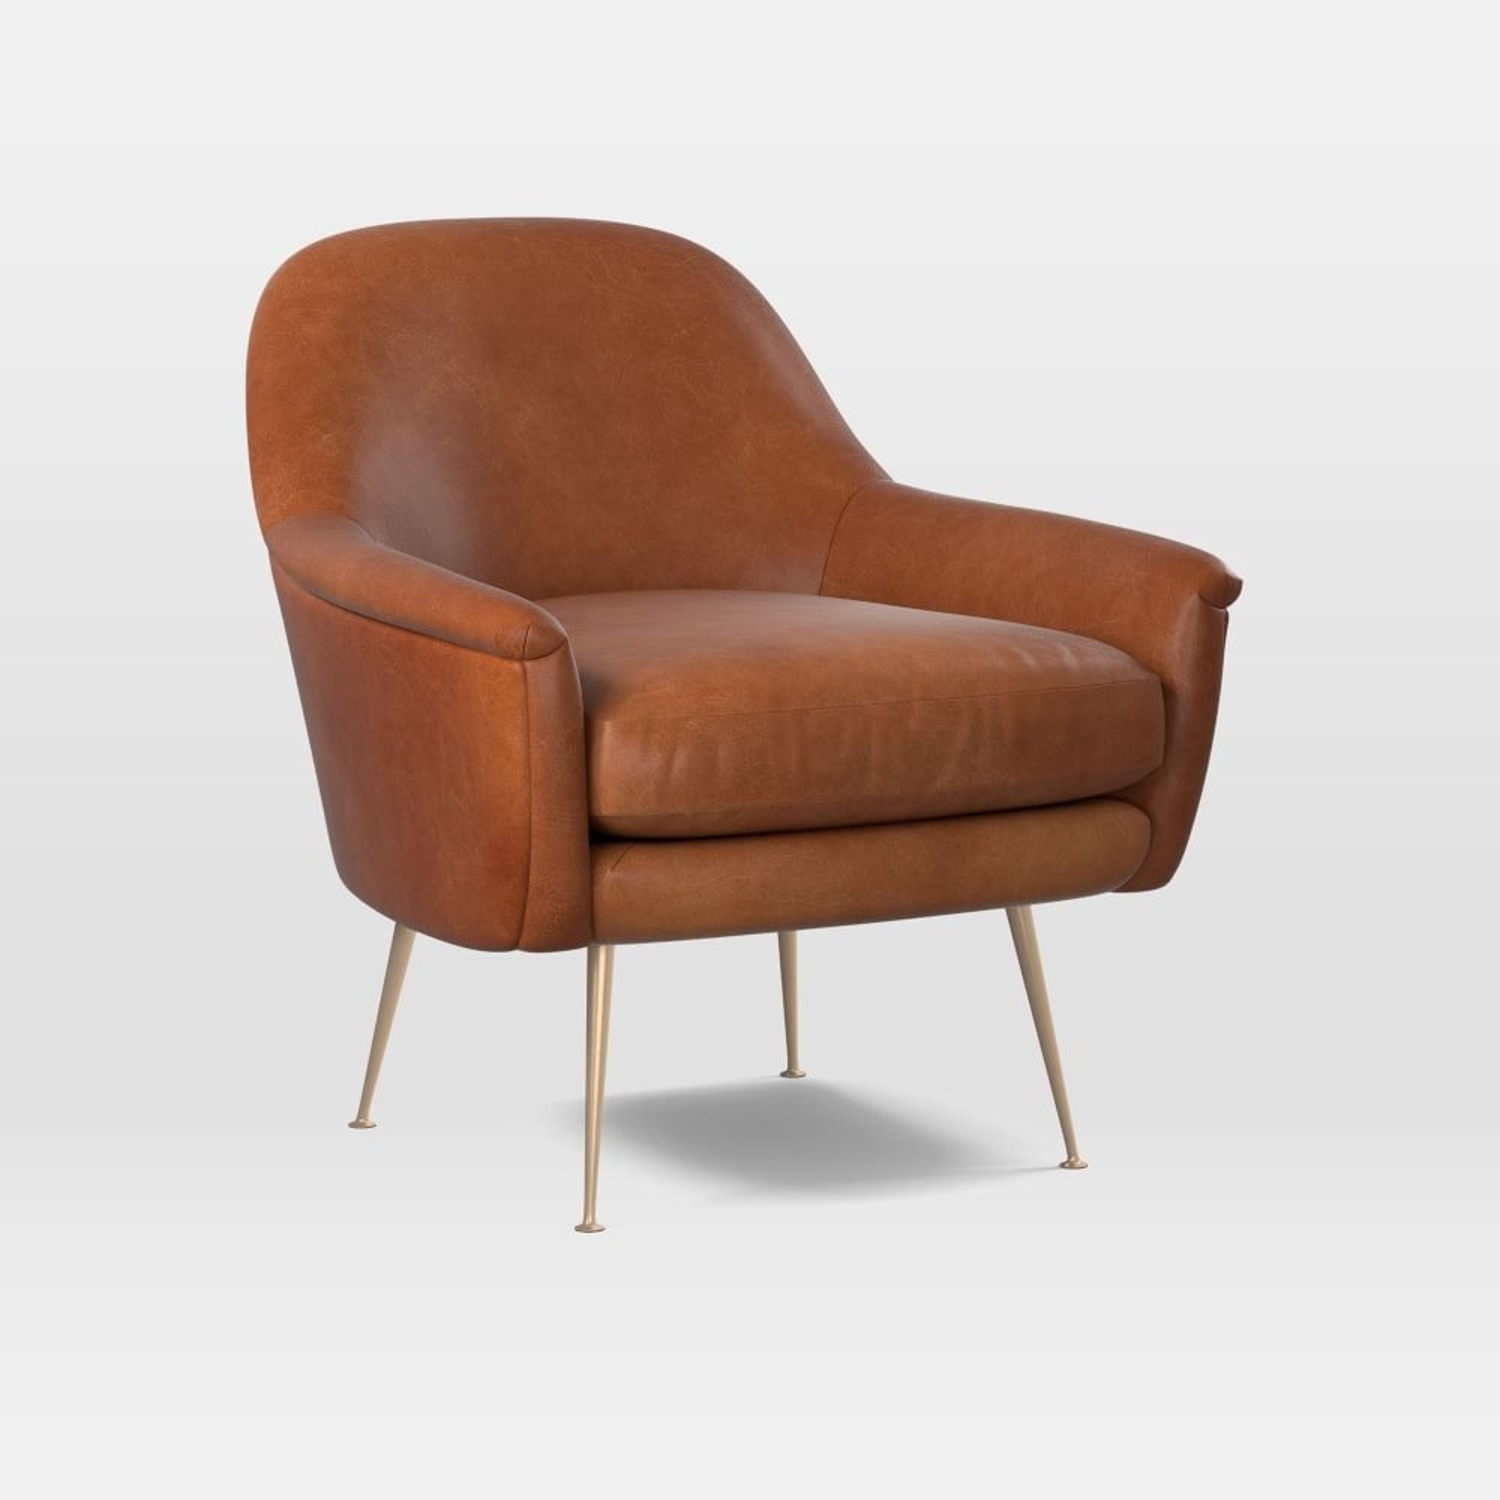 West Elm Phoebe Upholstered Mid-Century Chair - image-1